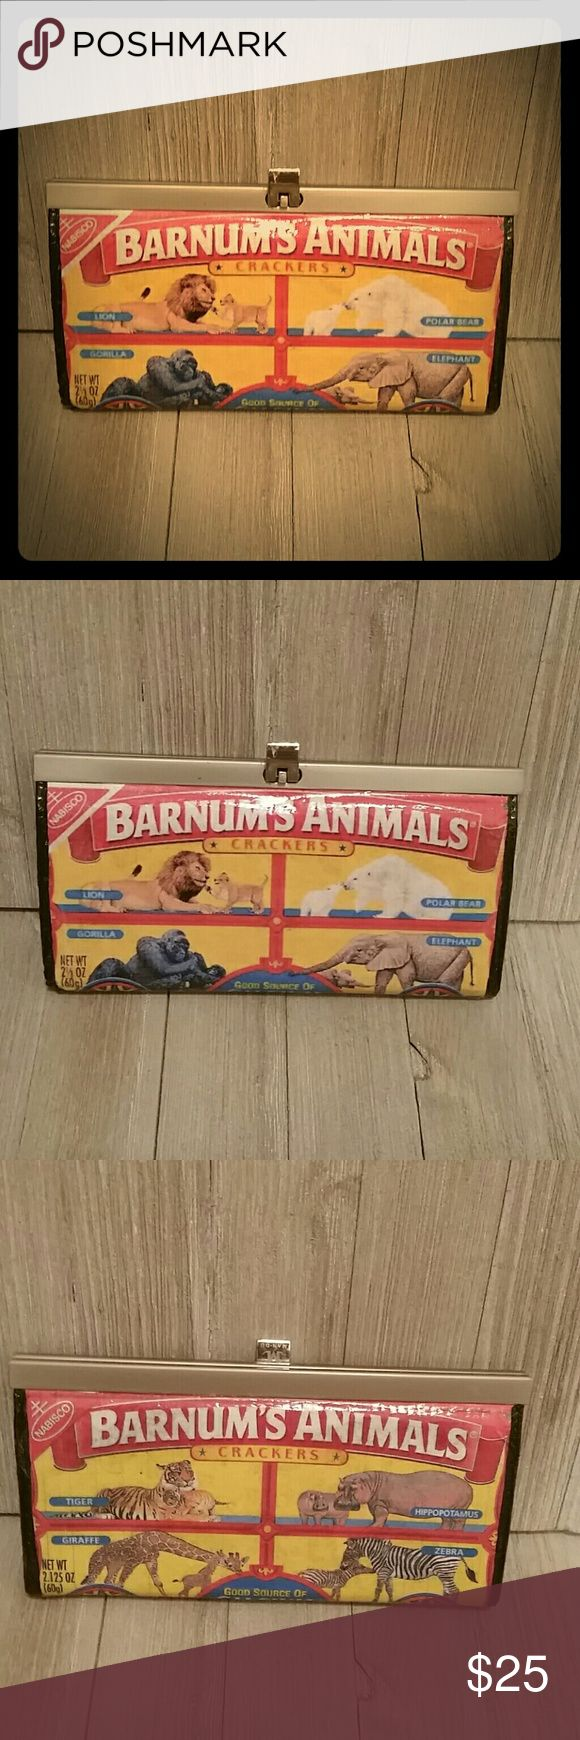 Barnum's Animal Crackers Circus Wallet This is a commercially made wallet that has been customized with the images shown. Please note the front image is a bit lower quality than the back. Wallet is coated with a gloss finish for style and durability. Measures 7.5 x 4 when closed, very roomy interior as shown in last pic. Bags Wallets